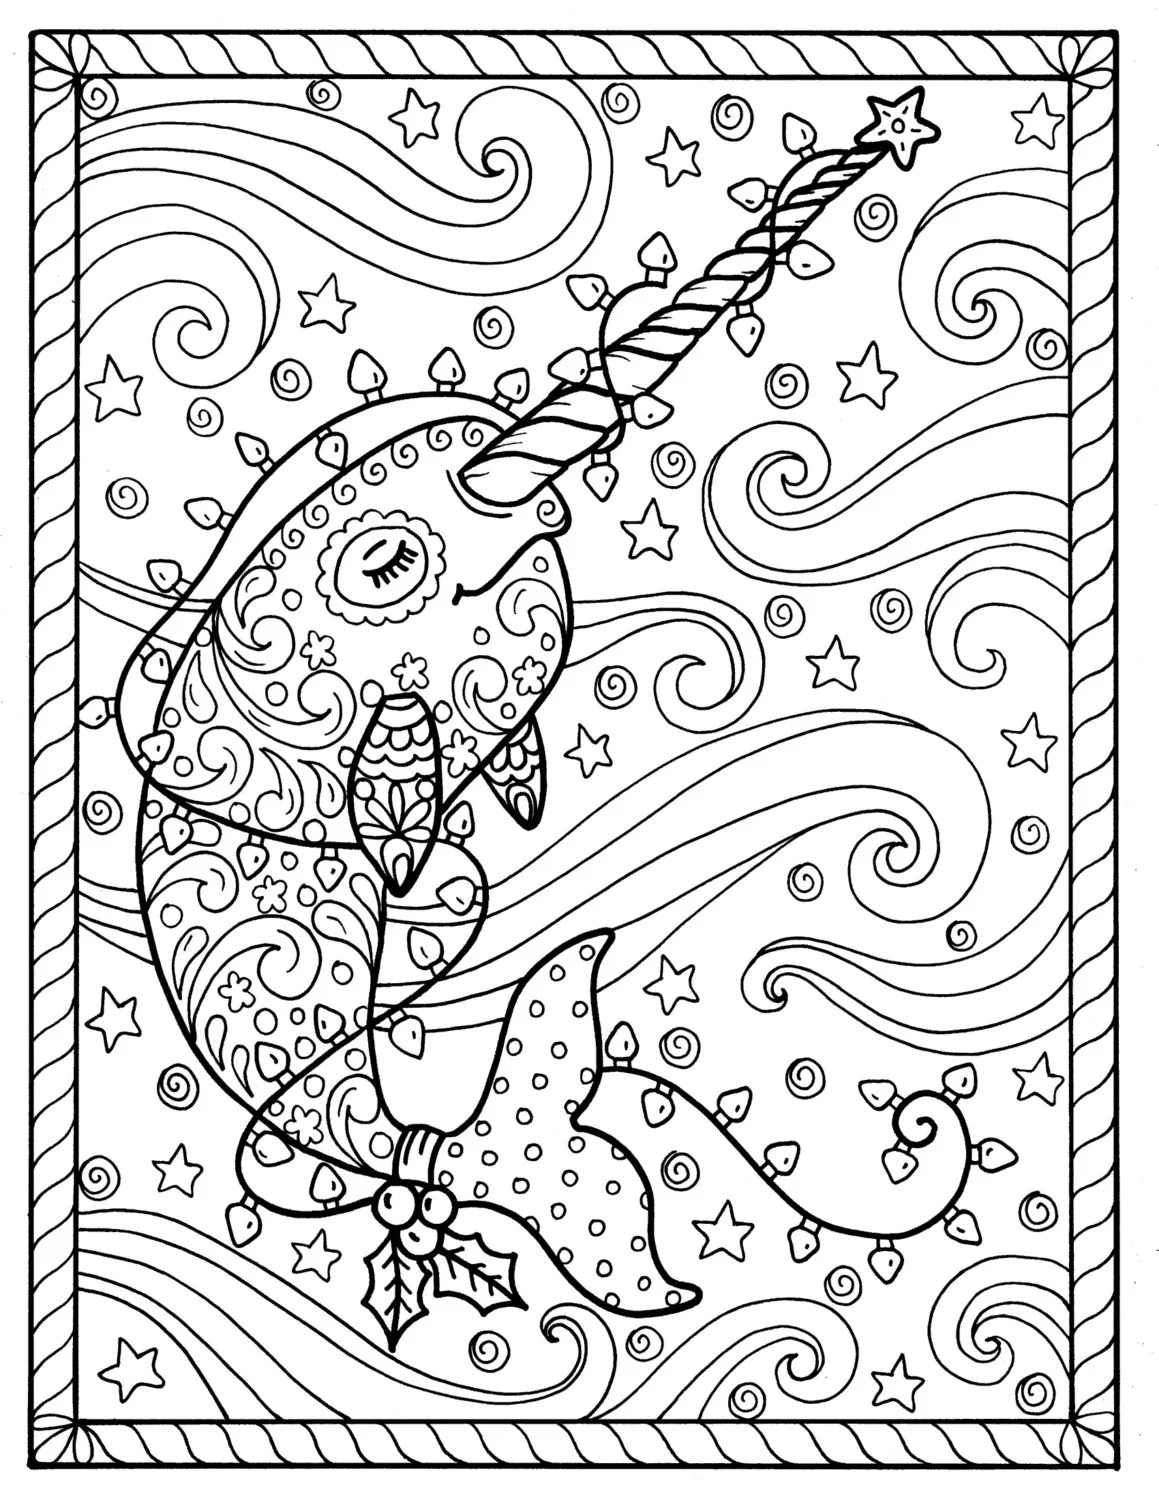 Narwhal Coloring Page : narwhal, coloring, Narwhal, Christmas, Coloring, Pages, Adult, Books